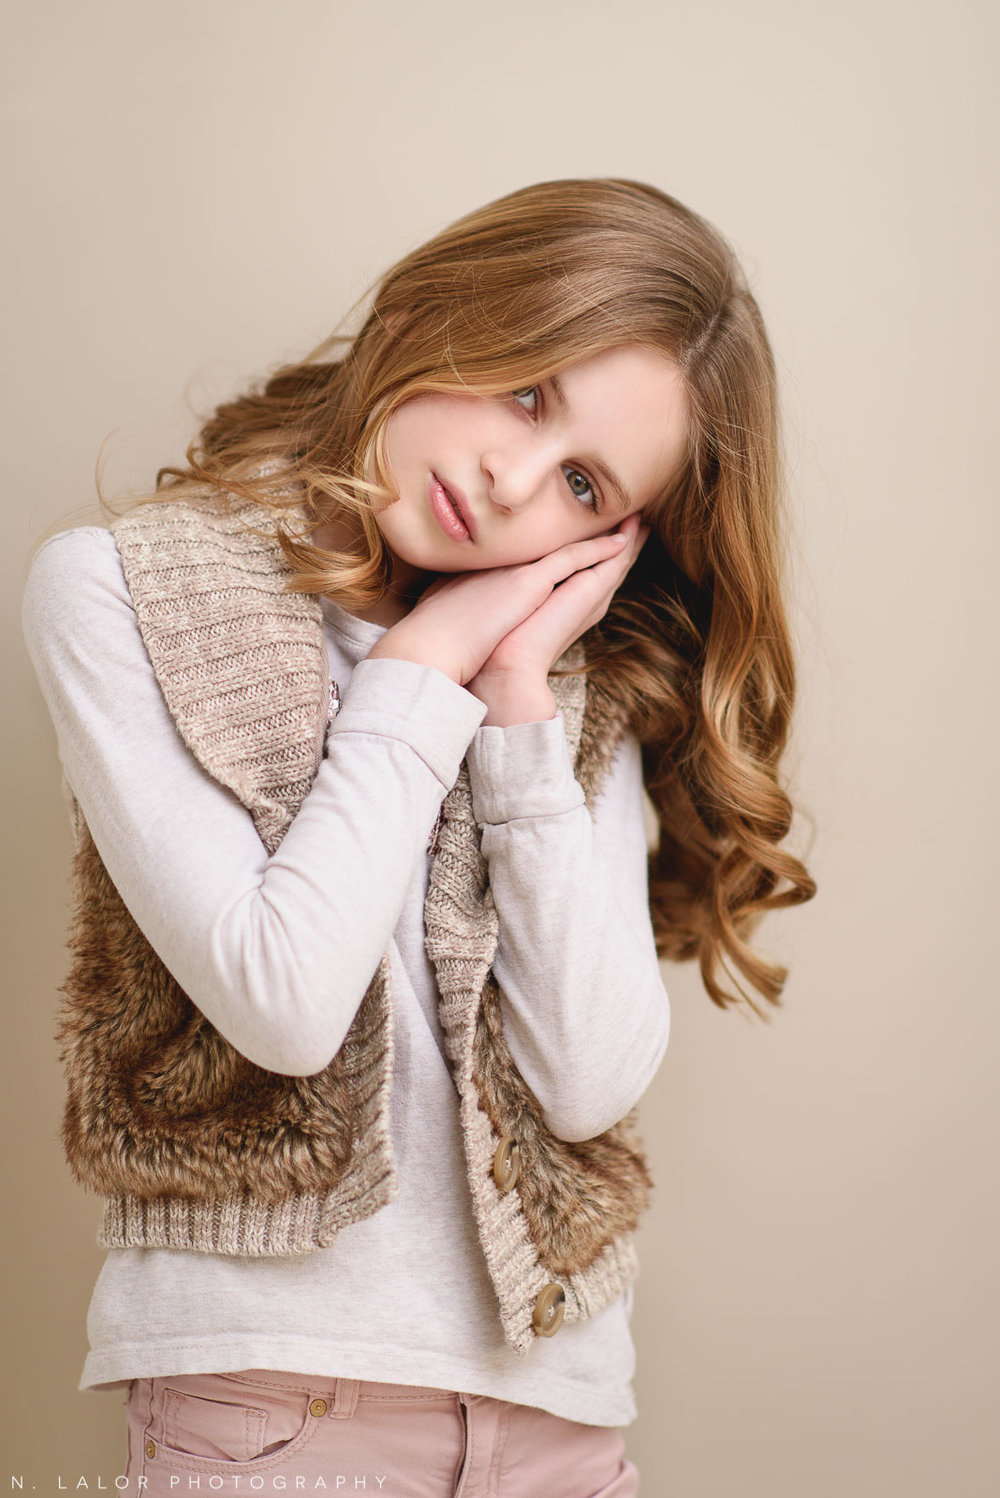 Grace. Tween Studio photoshoot by N. Lalor Photography, located in Greenwich, CT.